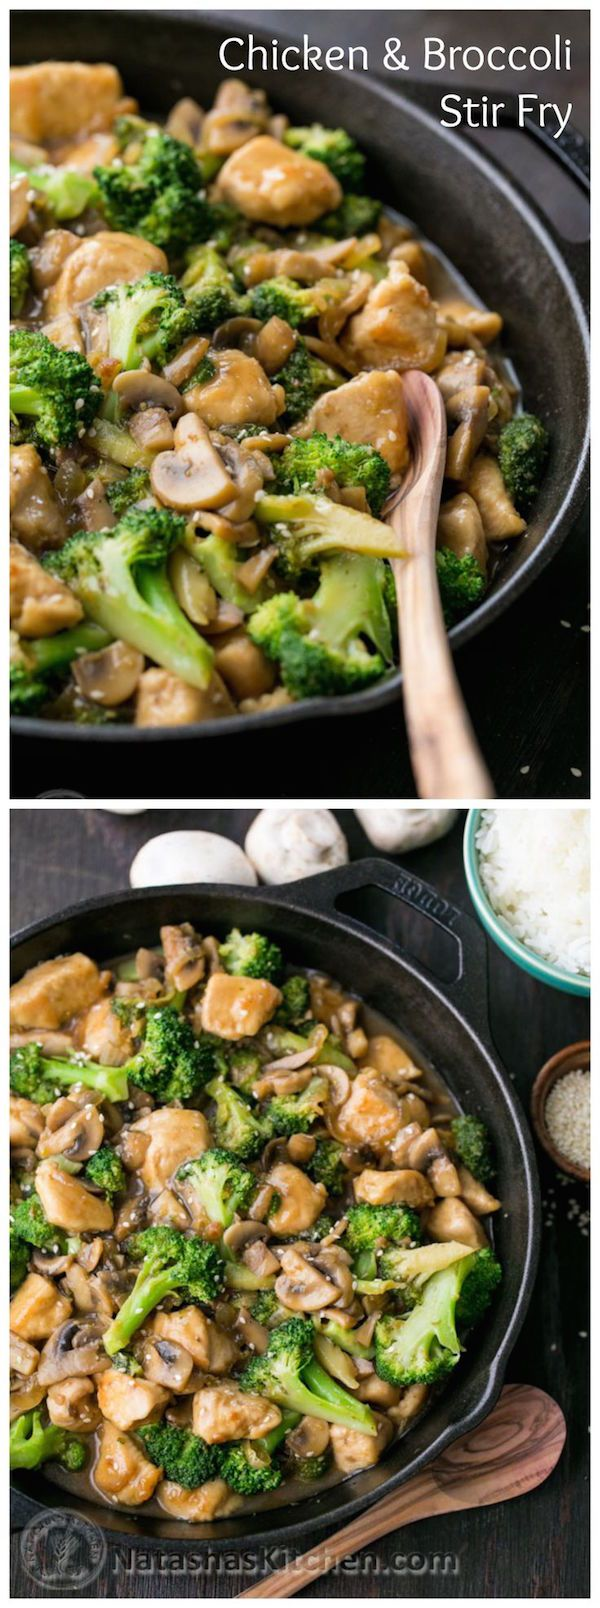 This chicken and broccoli stir fry is so tasty and much healthier than takeout!